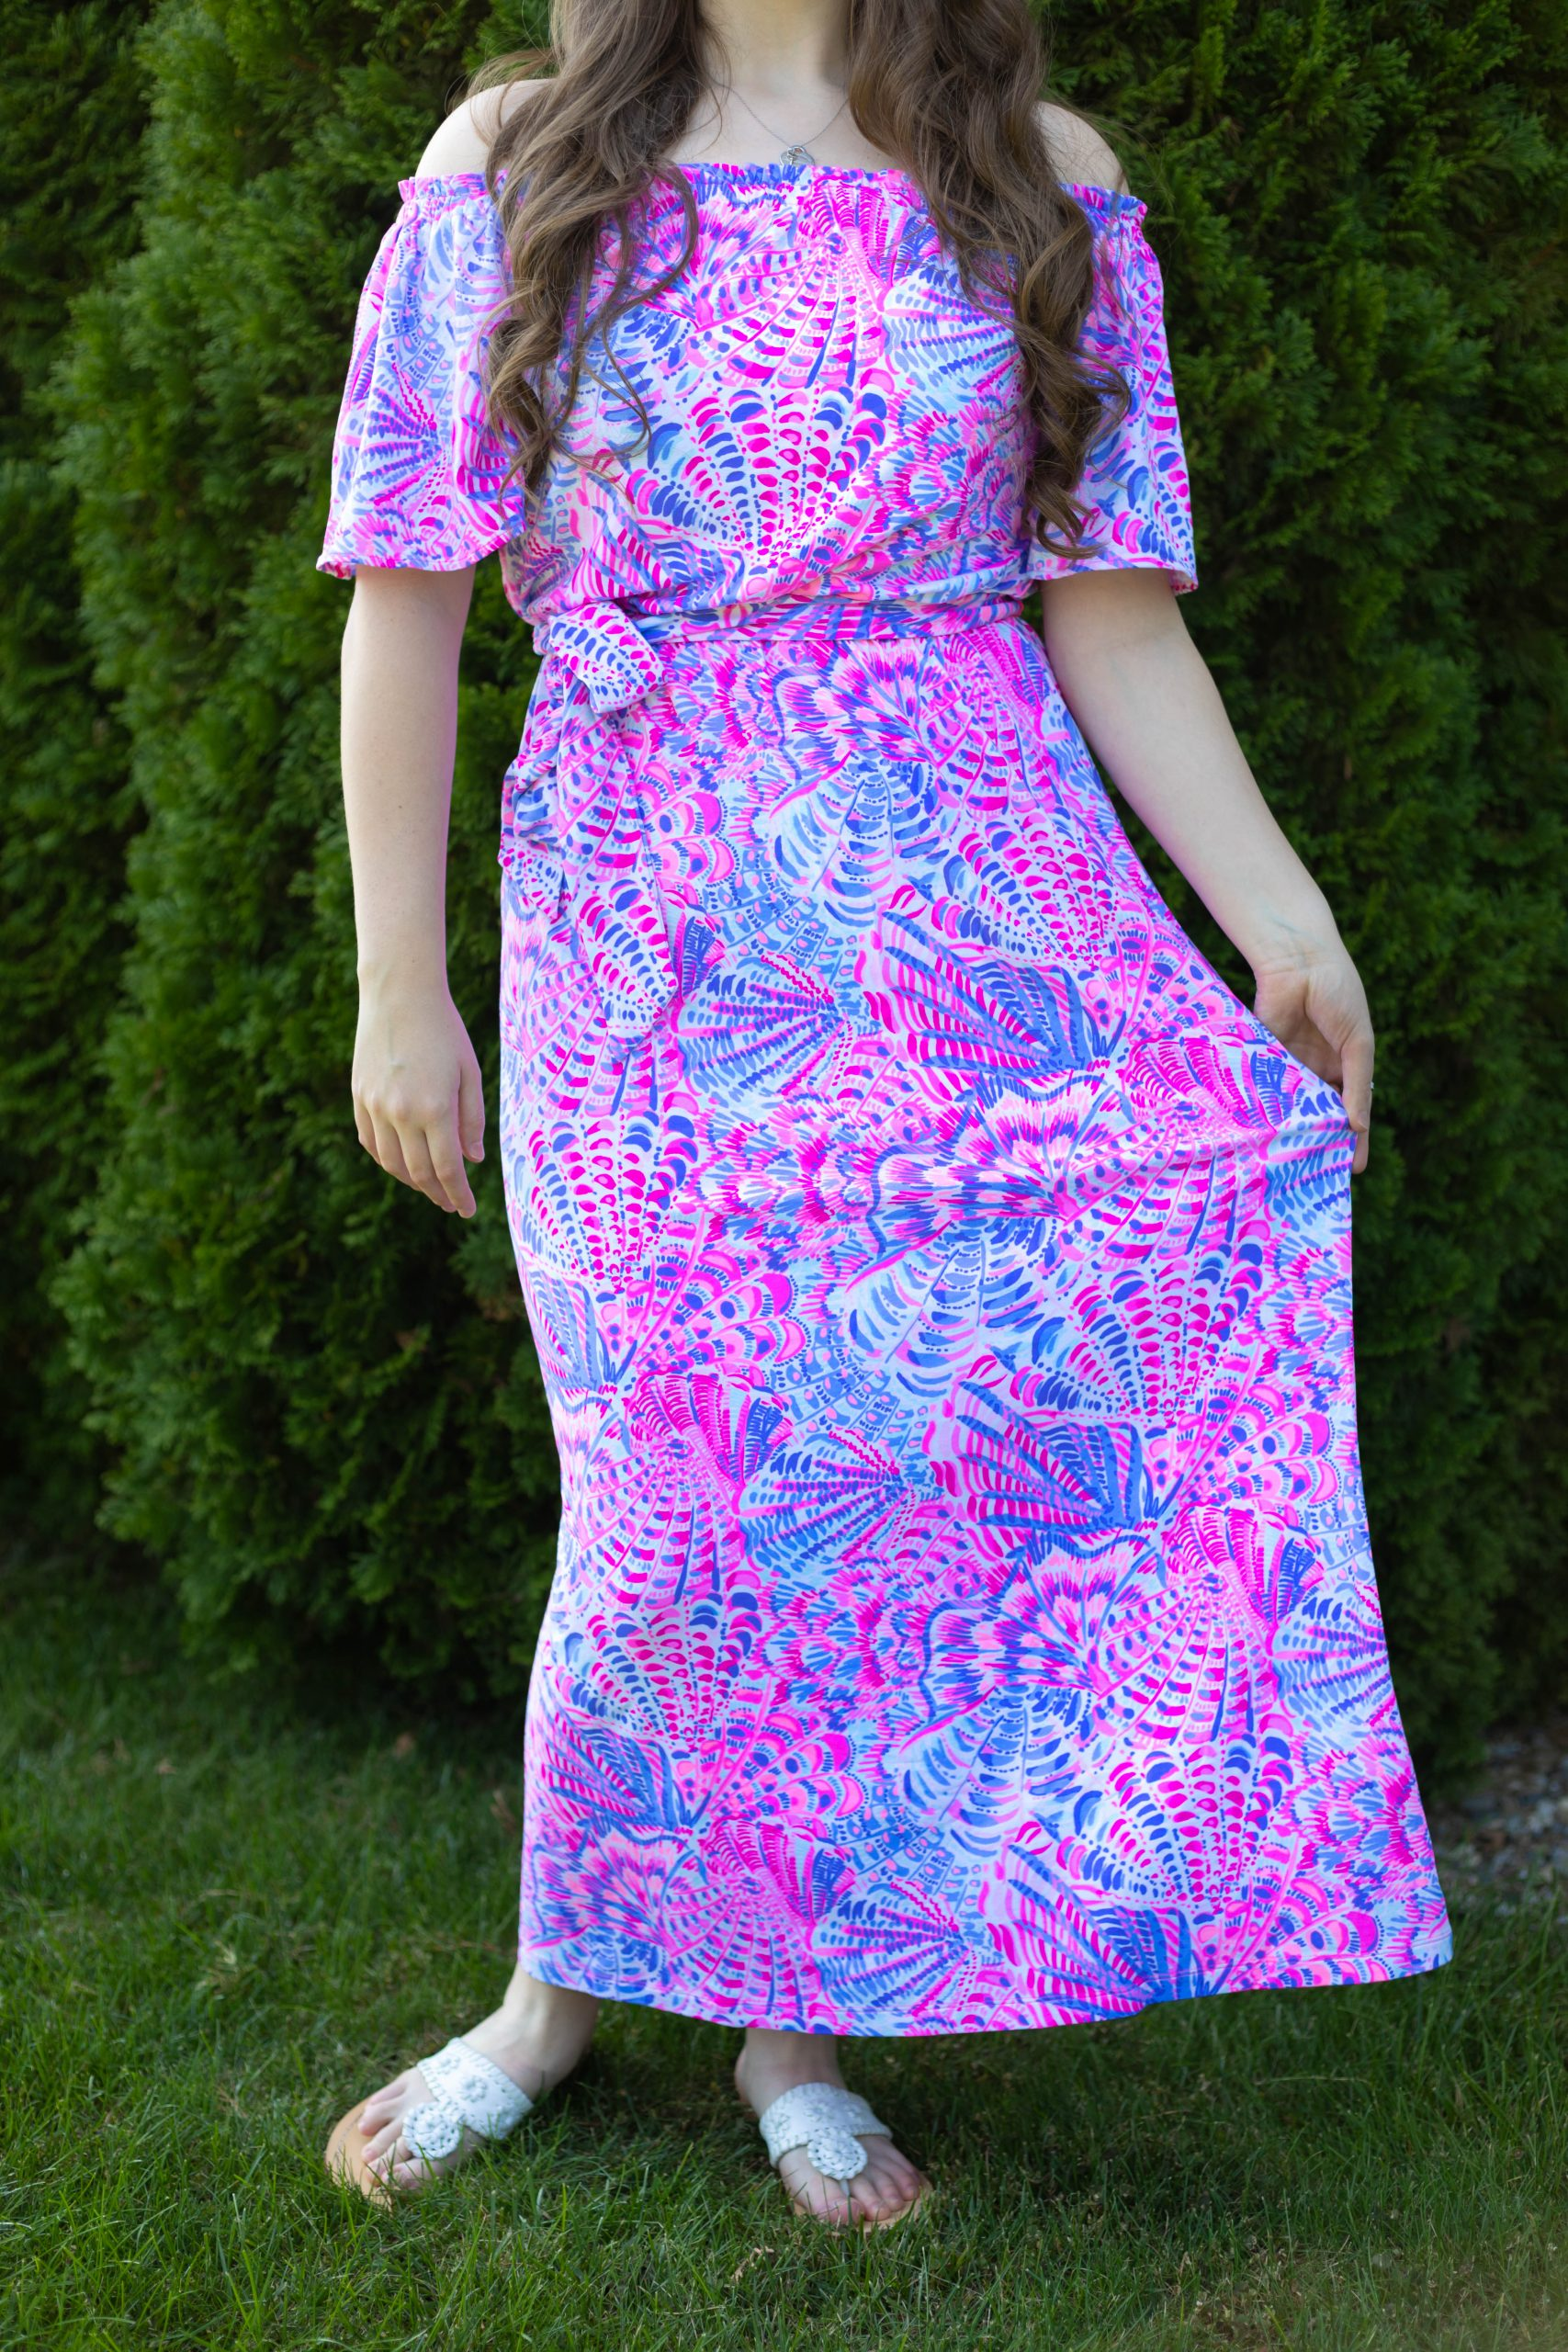 Moriah Off the Shoulder Lilly Pulitzer Dress in Raz Berry Sea You Soon Worn and Styled by Annie Fairfax